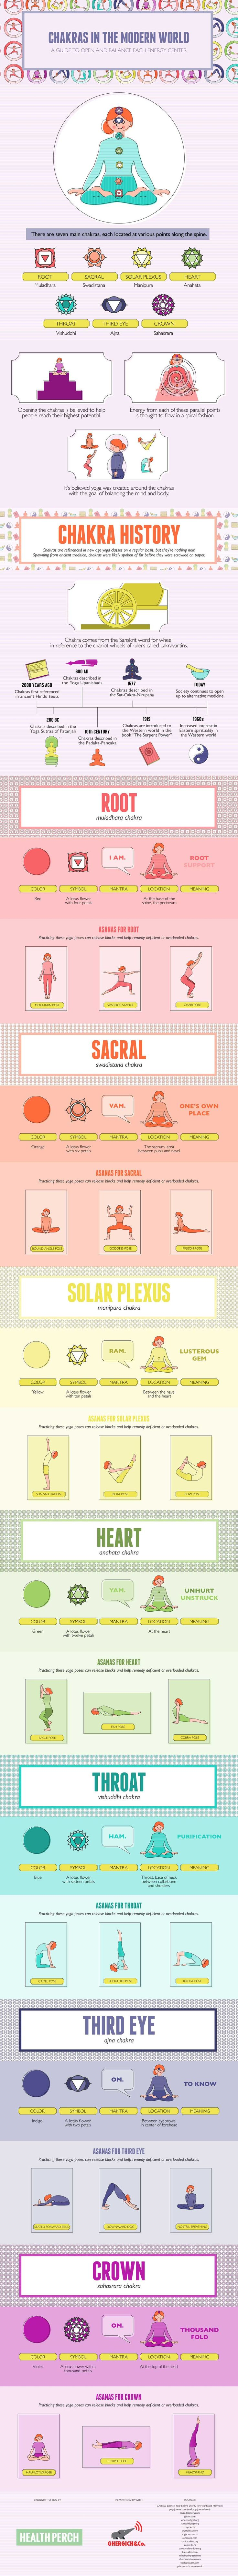 Infographic on whuch poses for which chakra